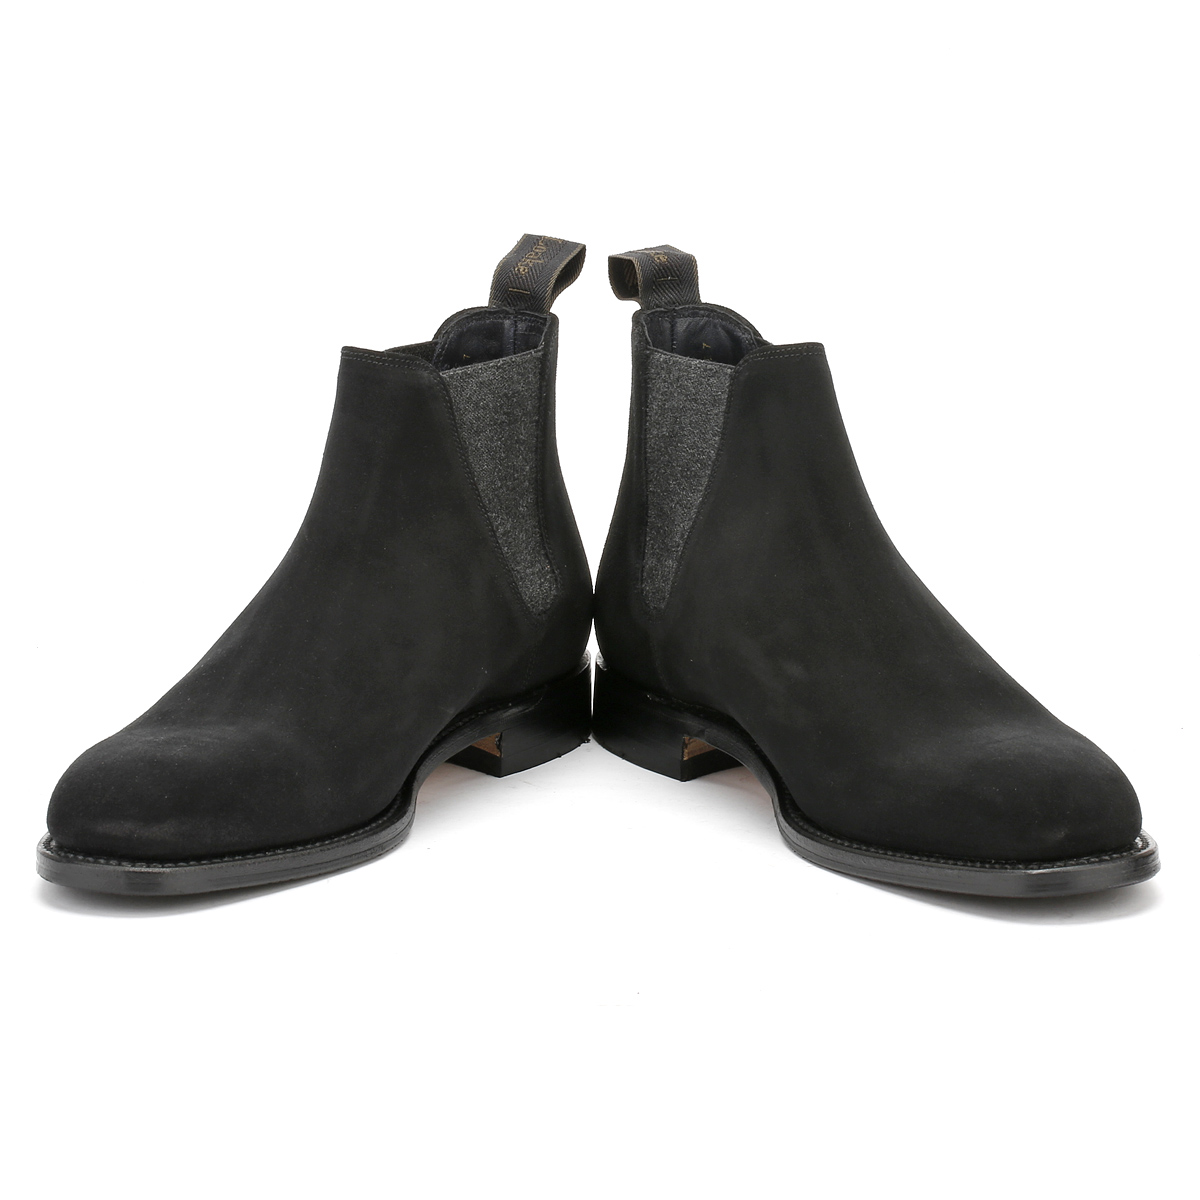 Loake Black Suede Shoes